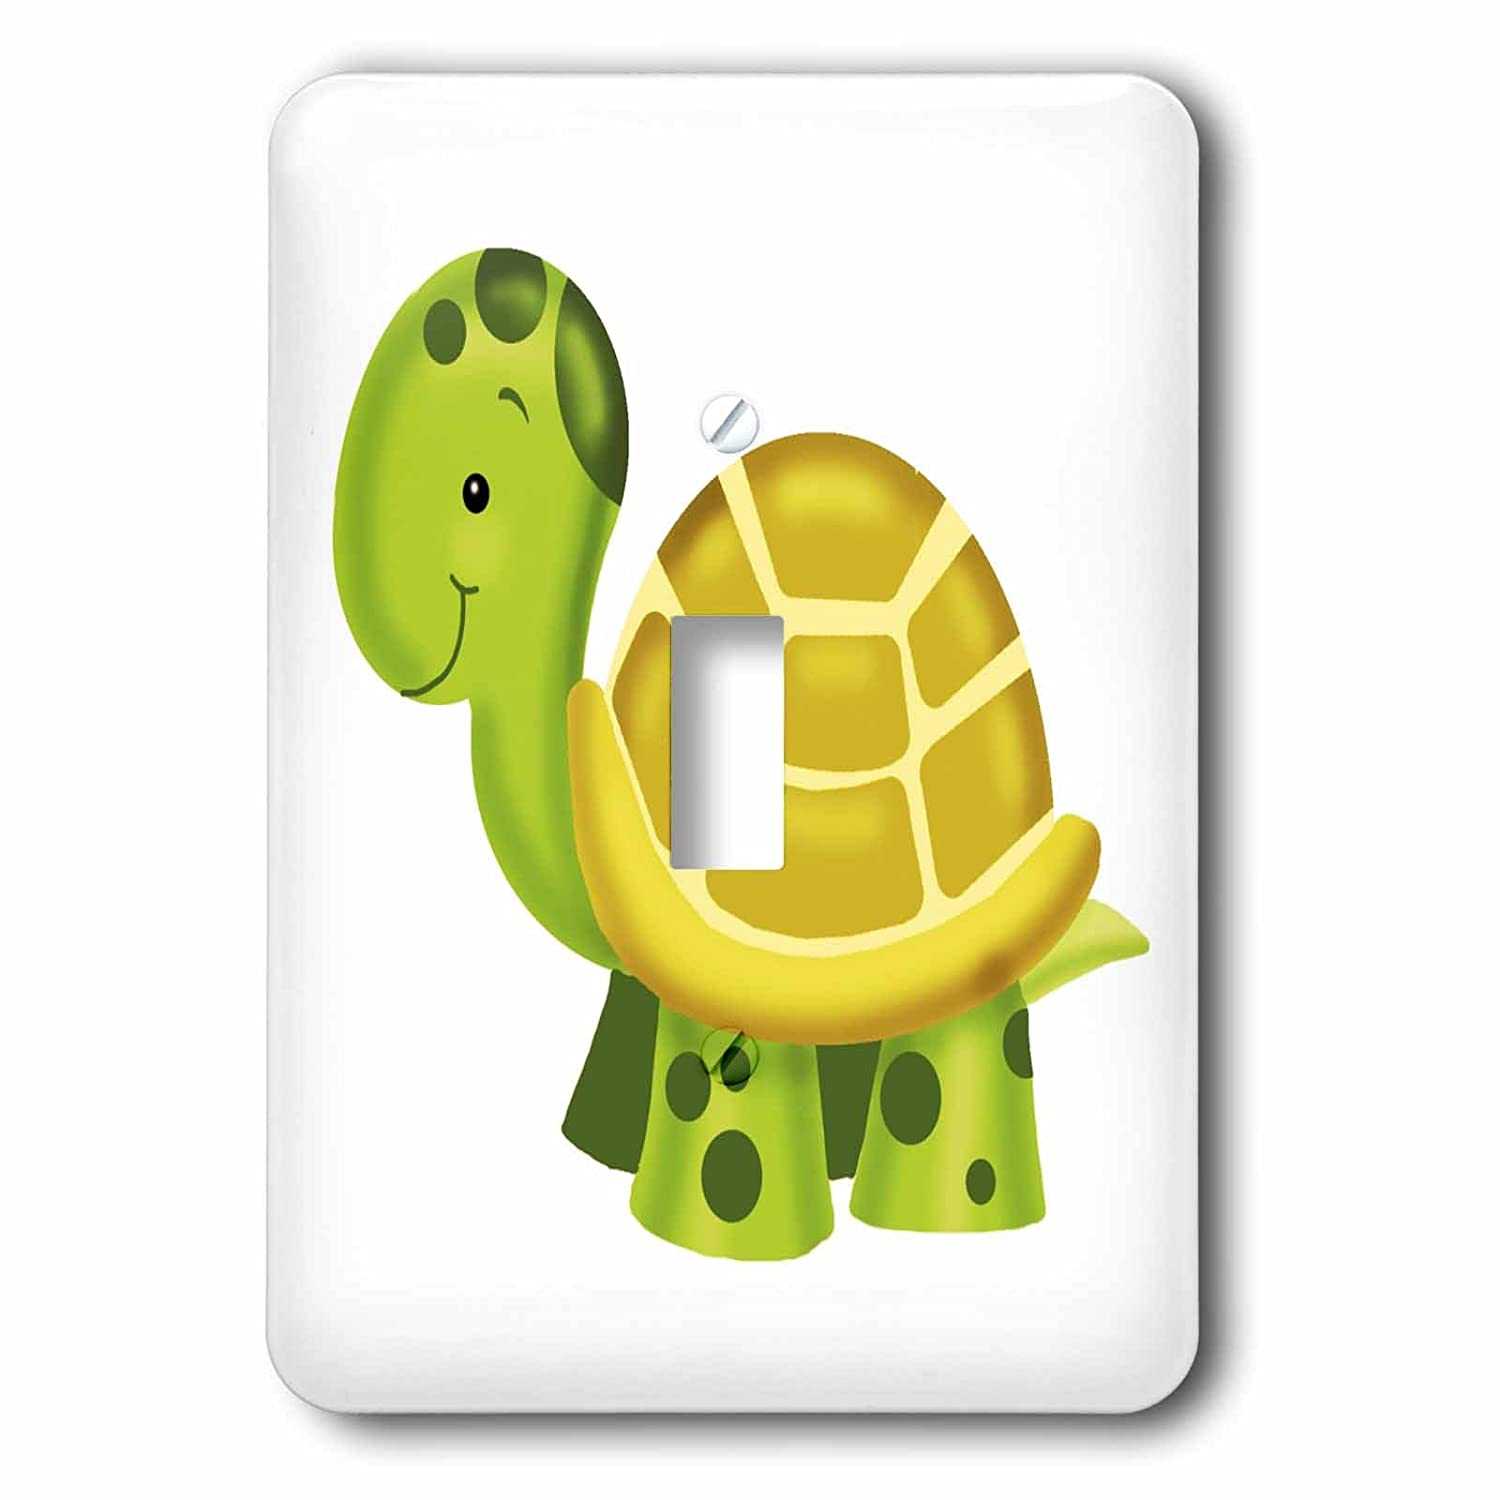 3drose LSP Turtle_ 237148 Illustration_ 1 Adorable Baby Turtle Baby Nursery Illustration SINGLE切り替えスイッチ B01M02TH2E, どんまい:63a13595 --- fifthelement.store